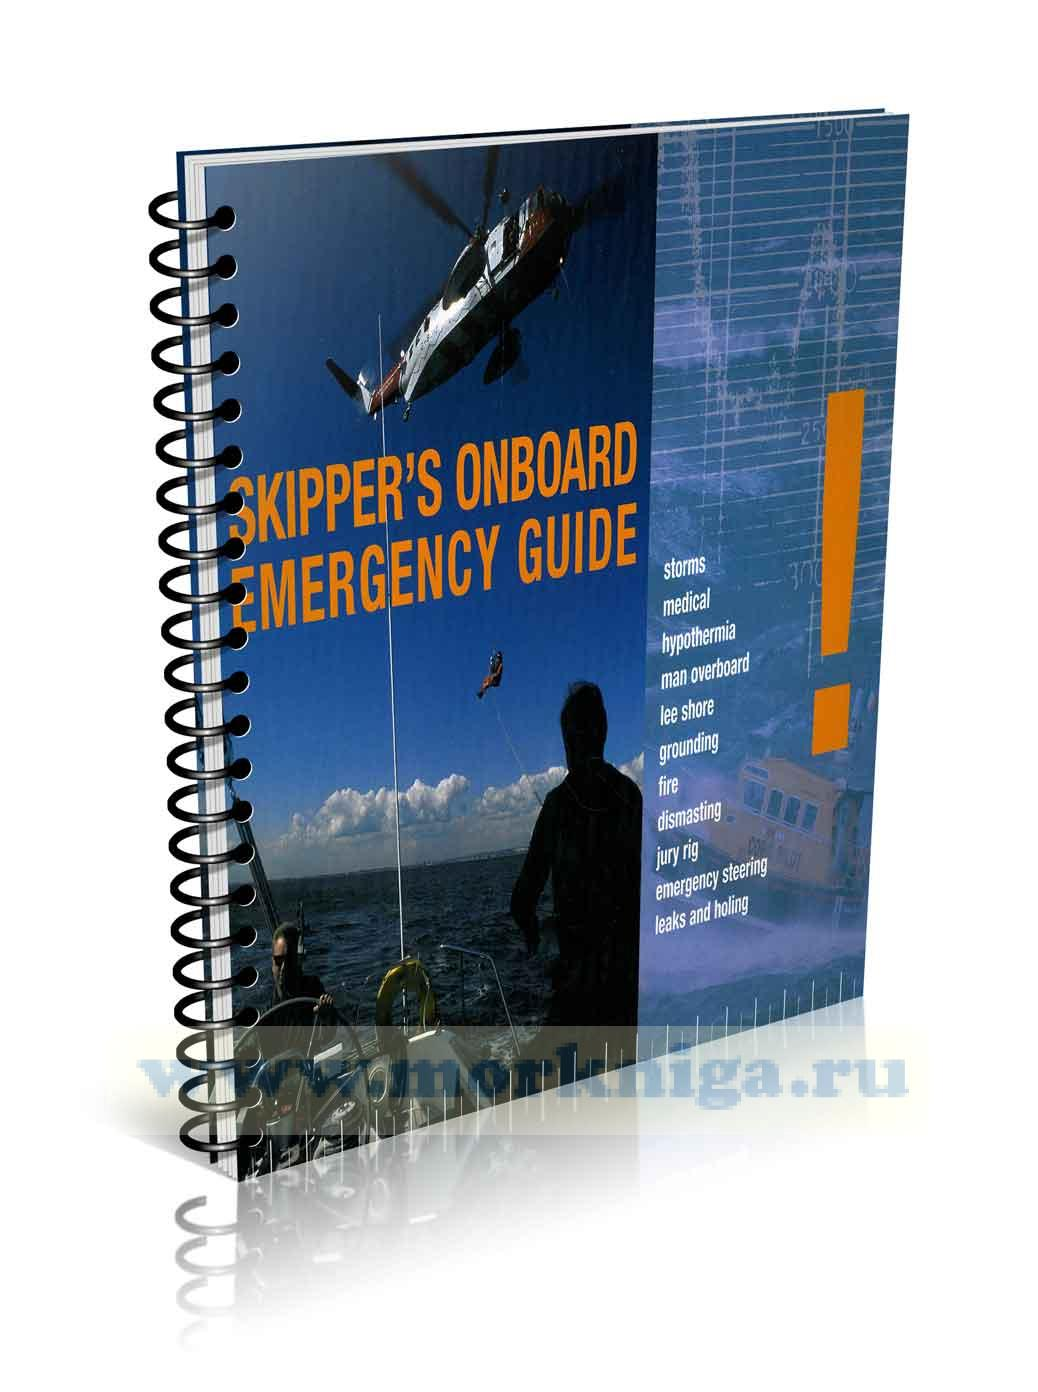 Skipper's Onboard Emergency Guide